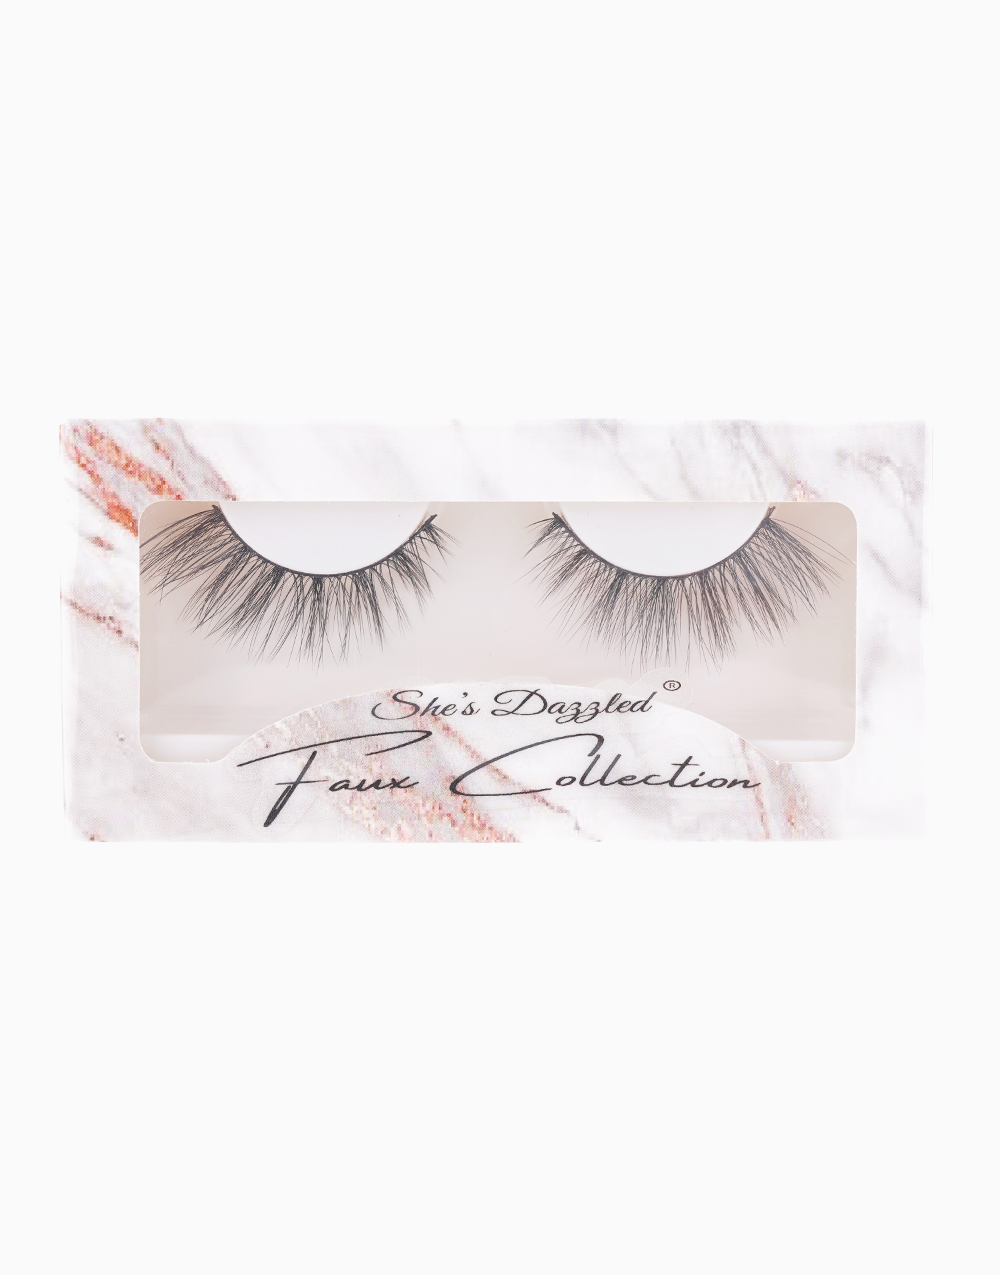 Faux Collection Lashes by She's Dazzled | Cartier